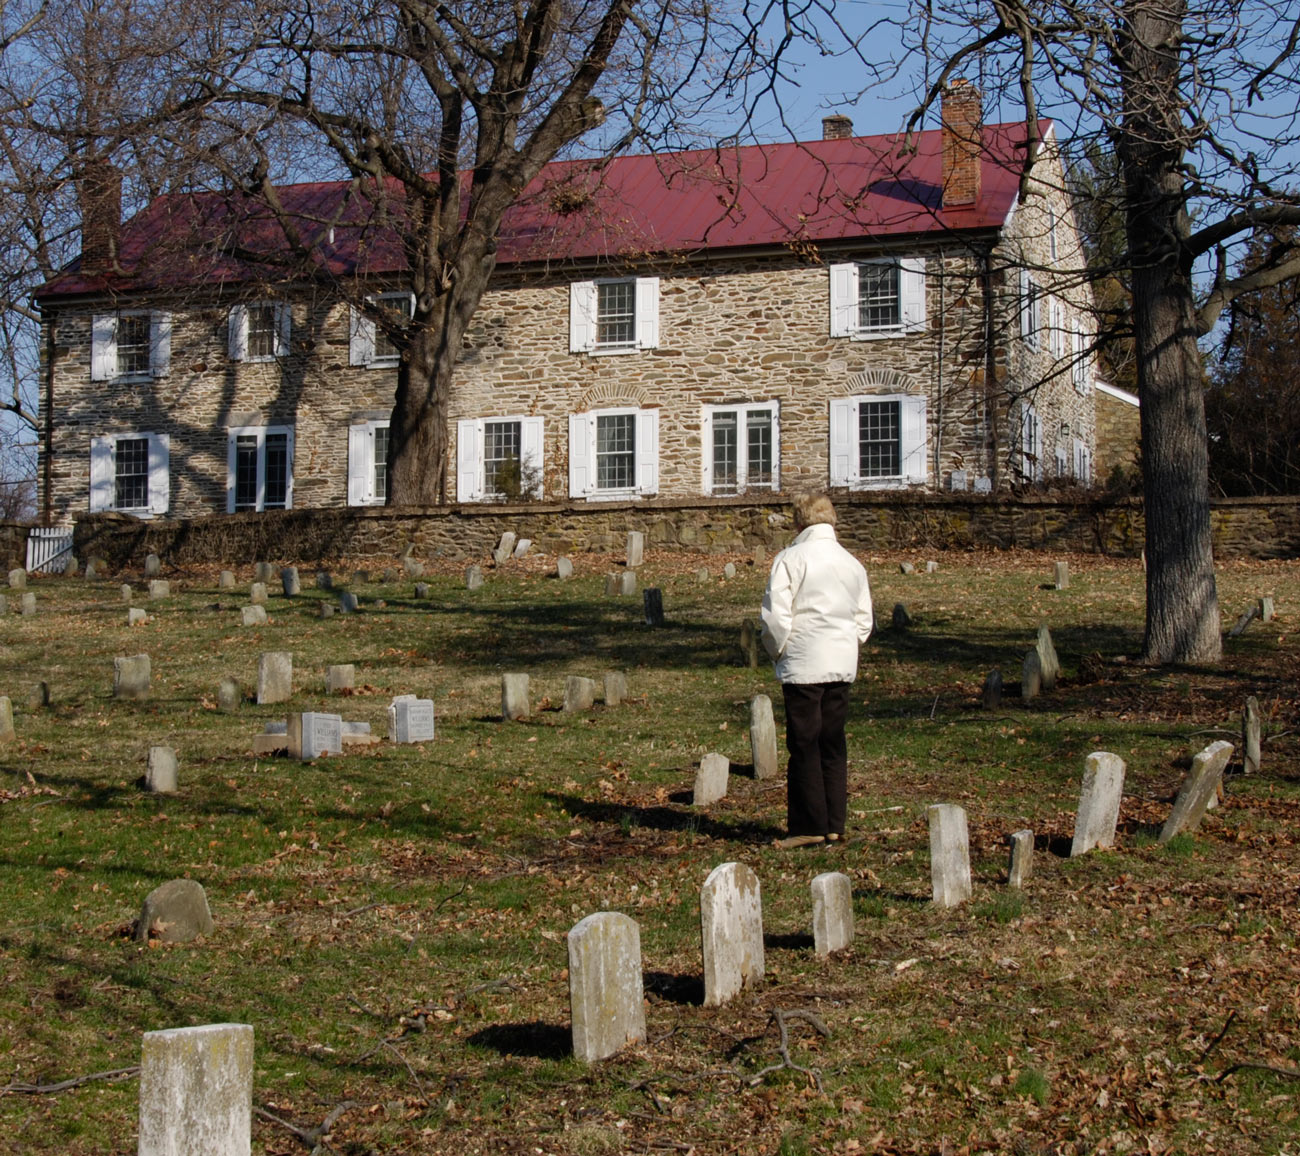 Quaker Meeting House & Cemetery